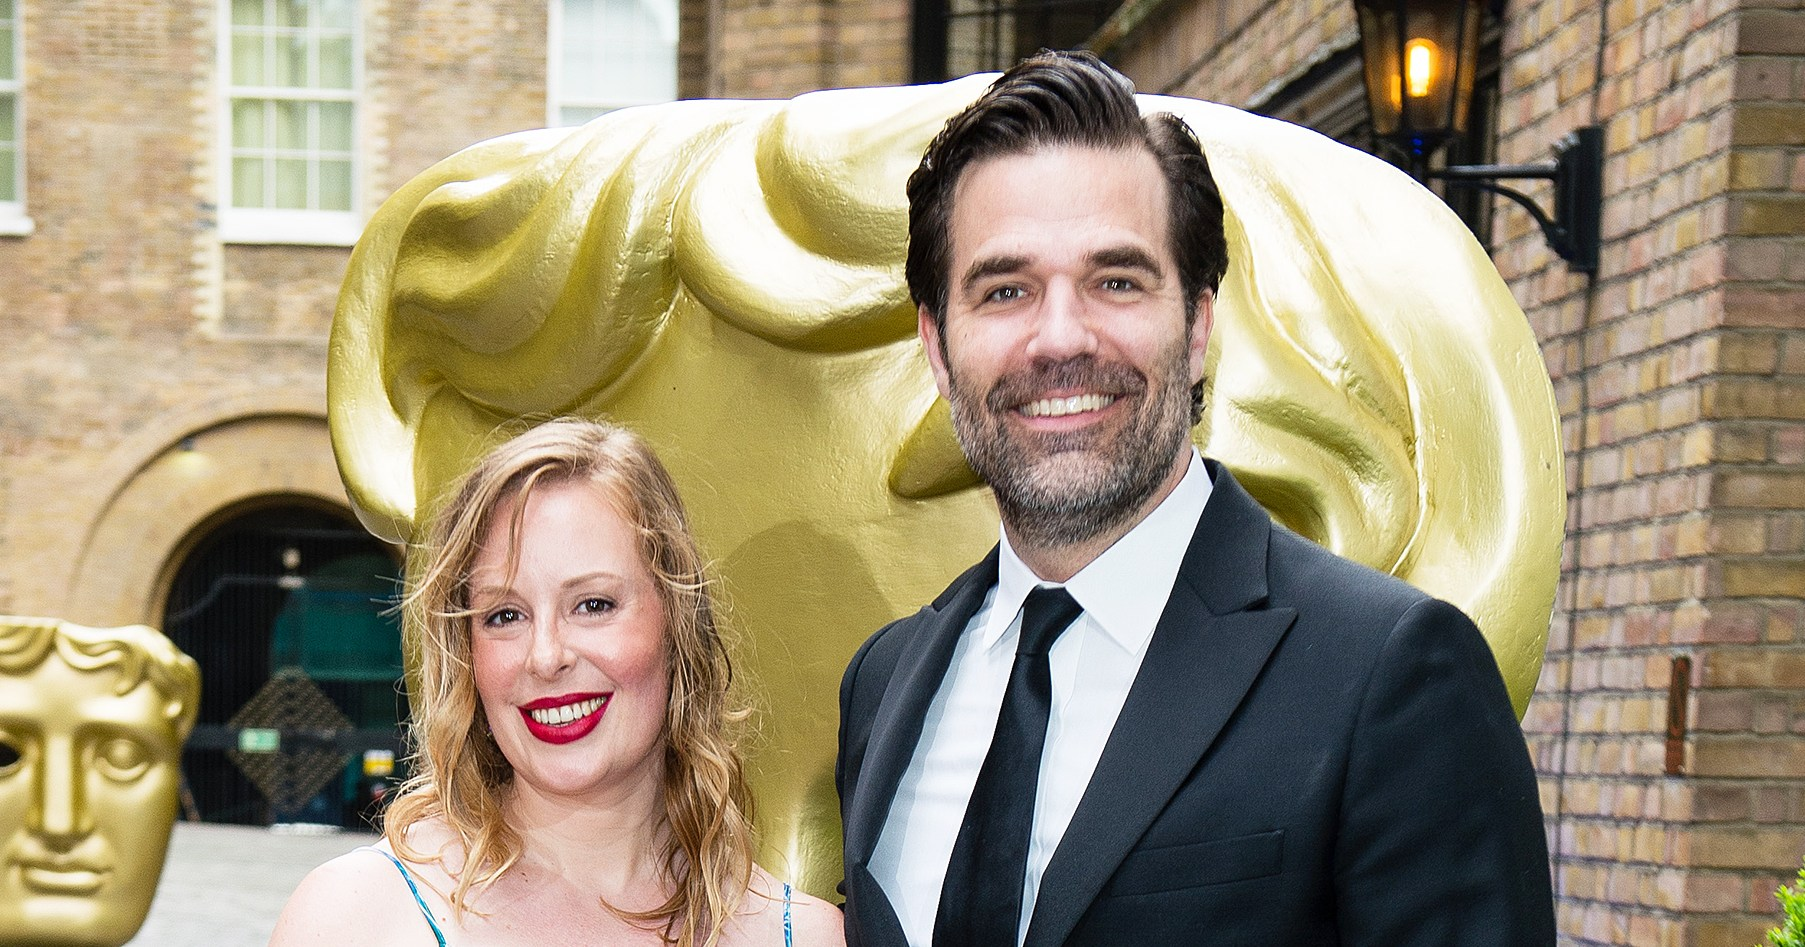 Rob Delaney Welcomes 4th Child After Son Henry's Death